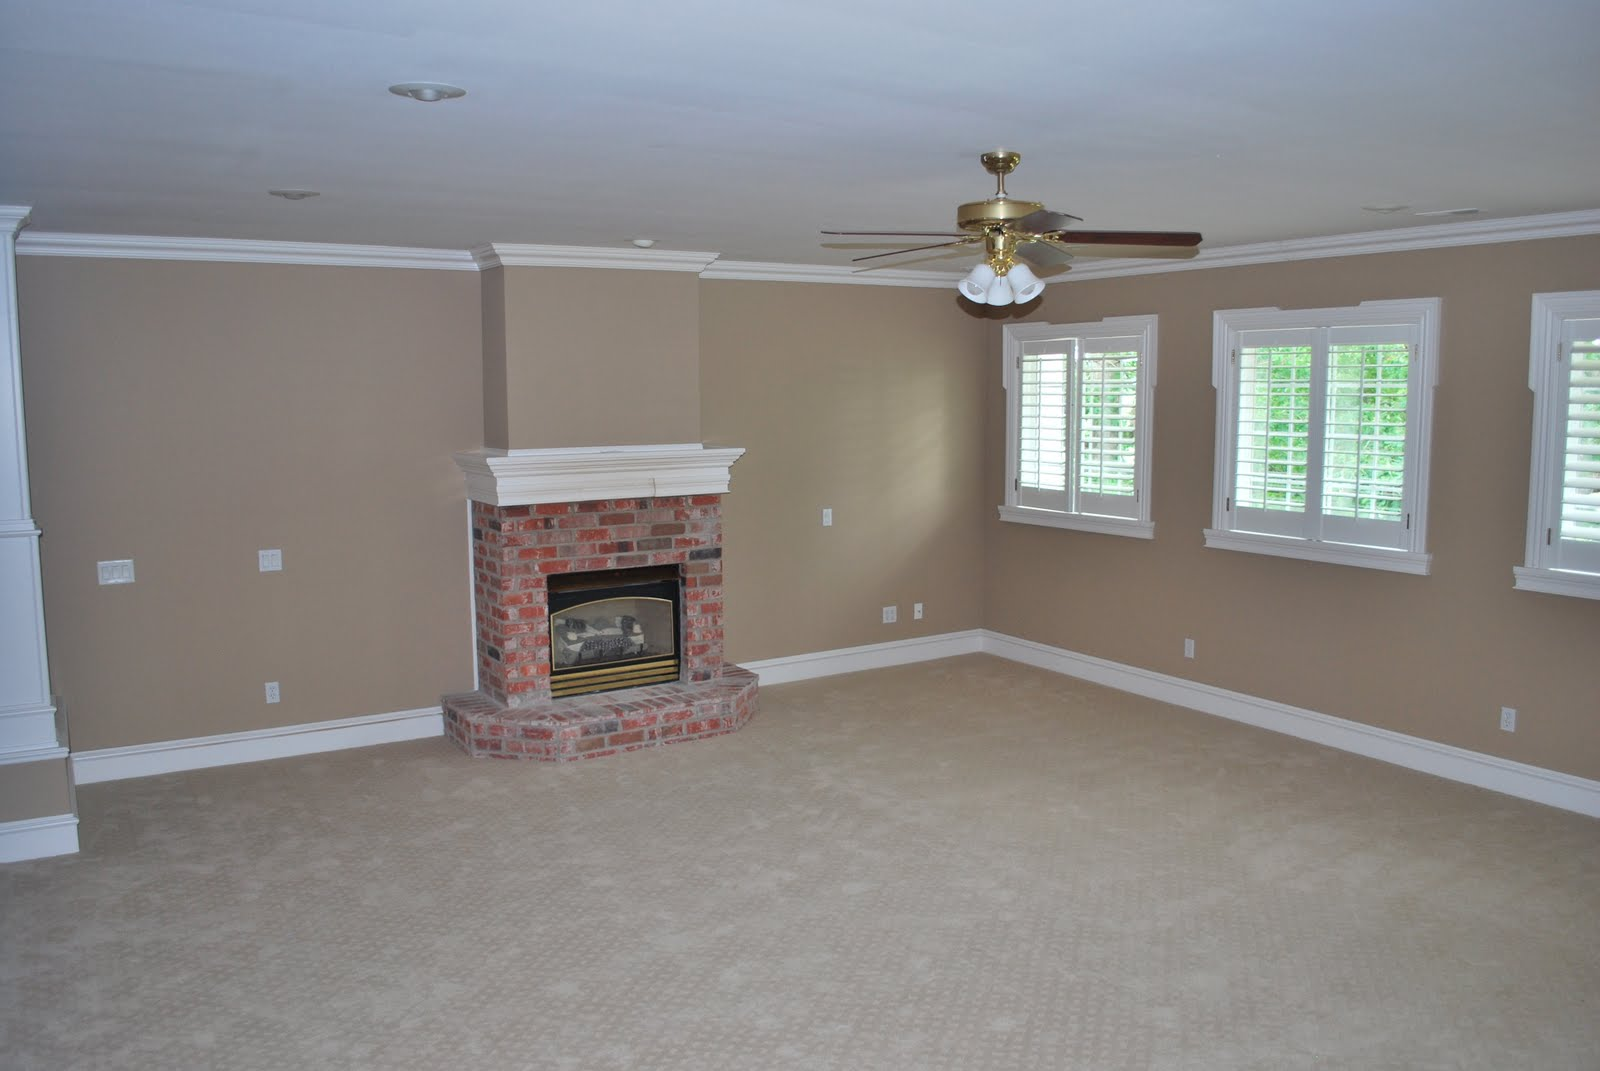 Paint Colors That Go With Red Brick Fireplace Paint Colors For Living Room With Red Brick Fireplace